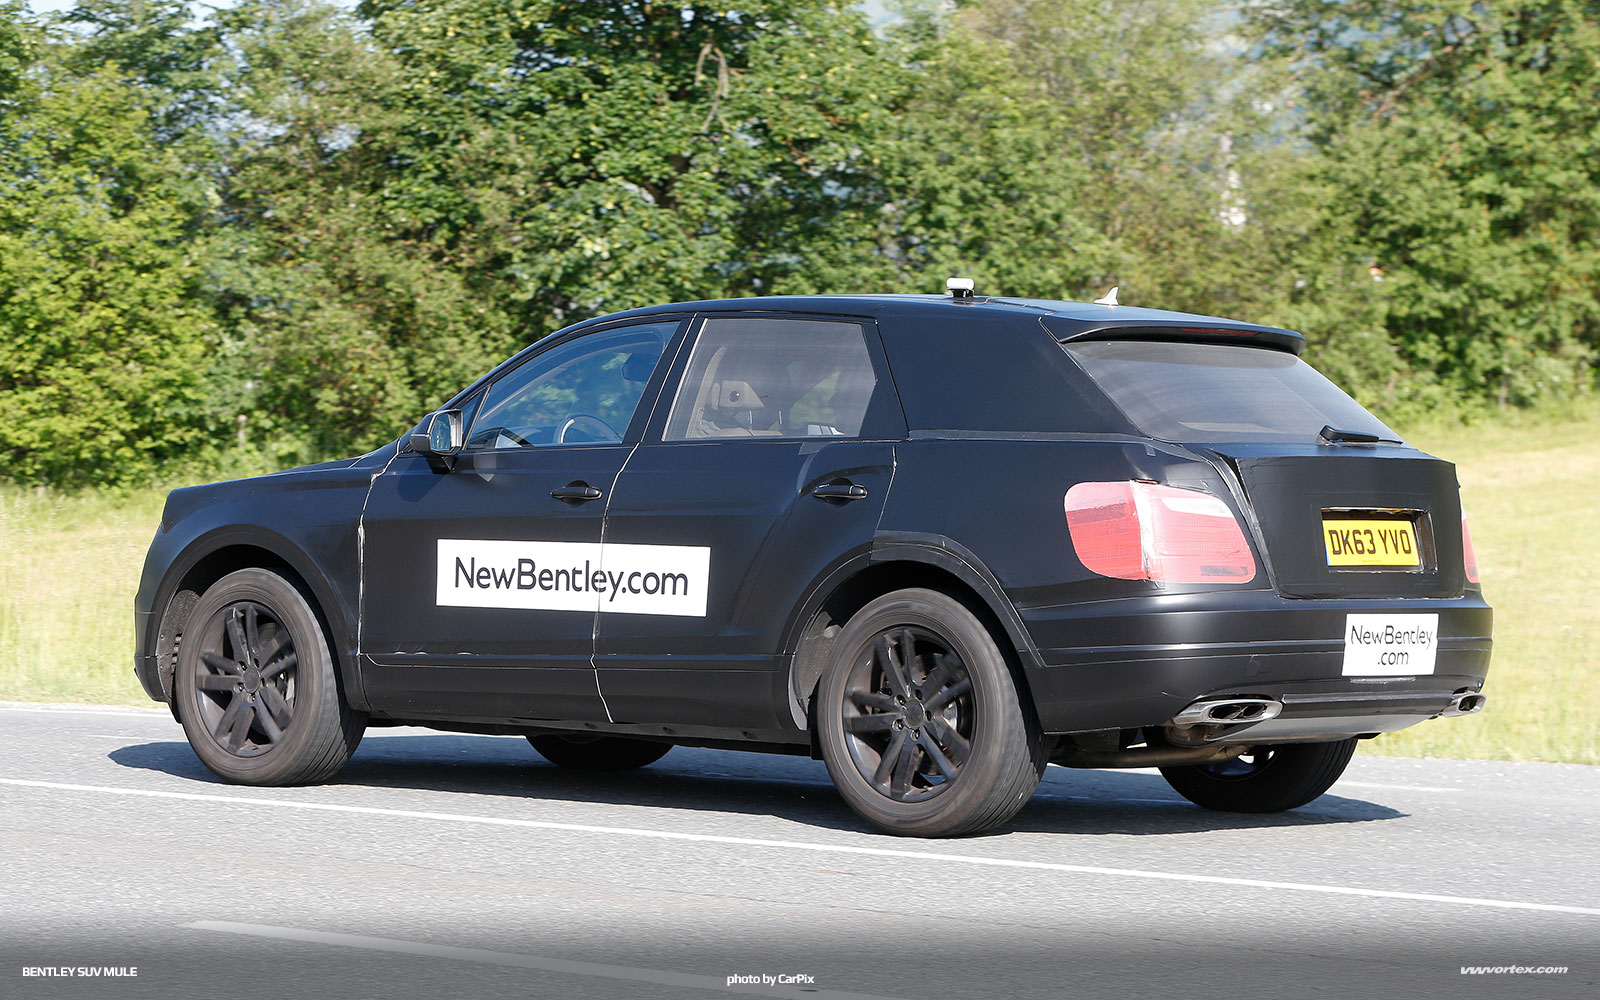 bentley-suv-mule-spy-photos-373